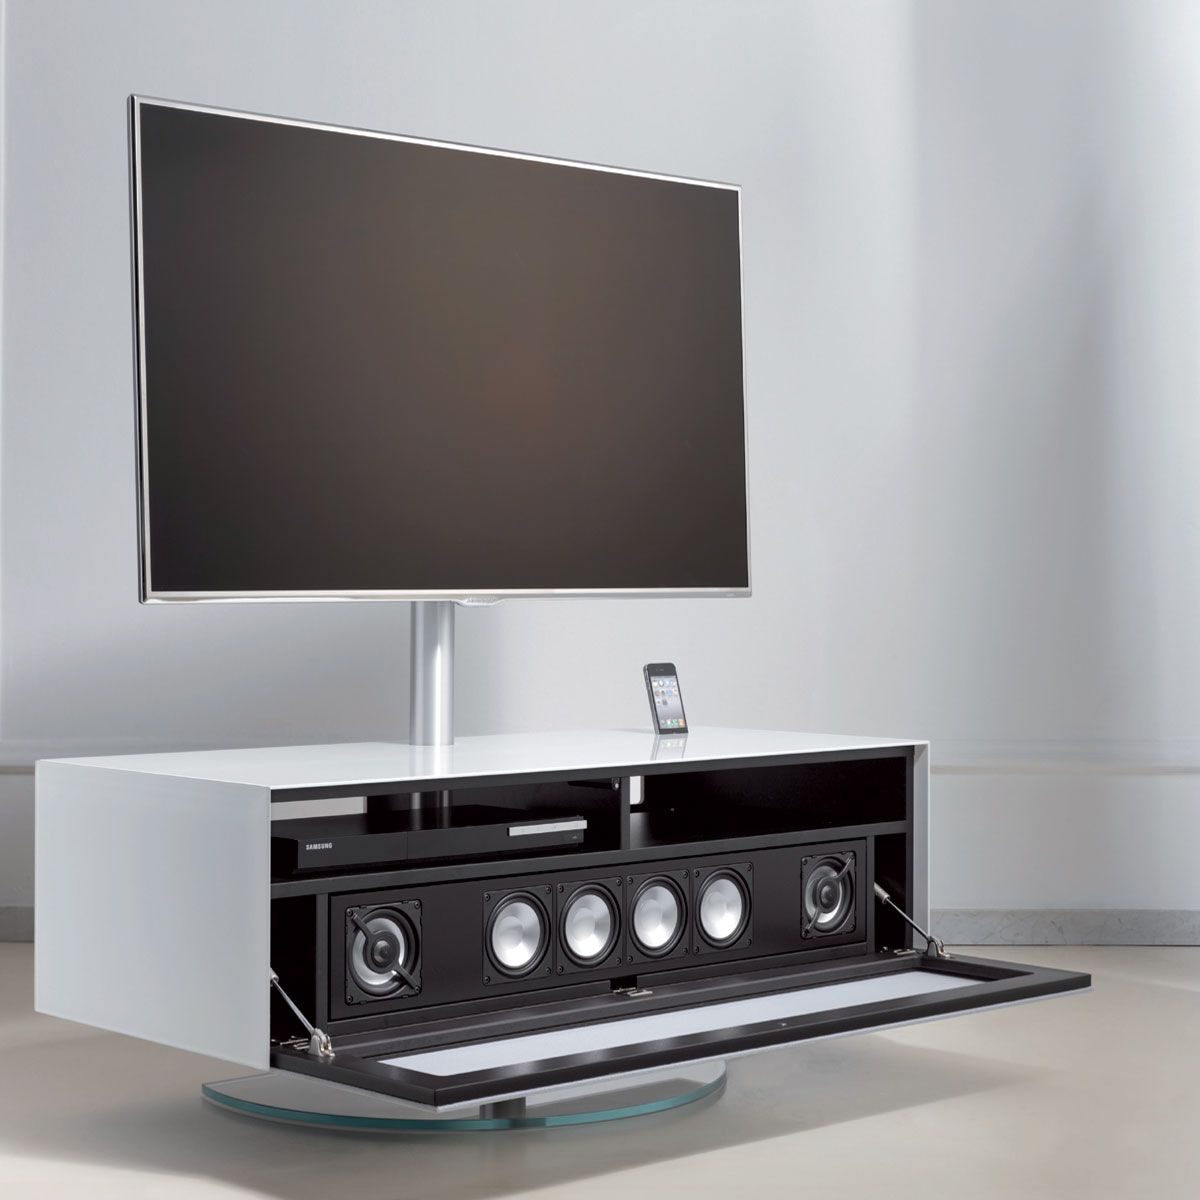 spectral catena archive tv m bel und hifi m bel guide. Black Bedroom Furniture Sets. Home Design Ideas